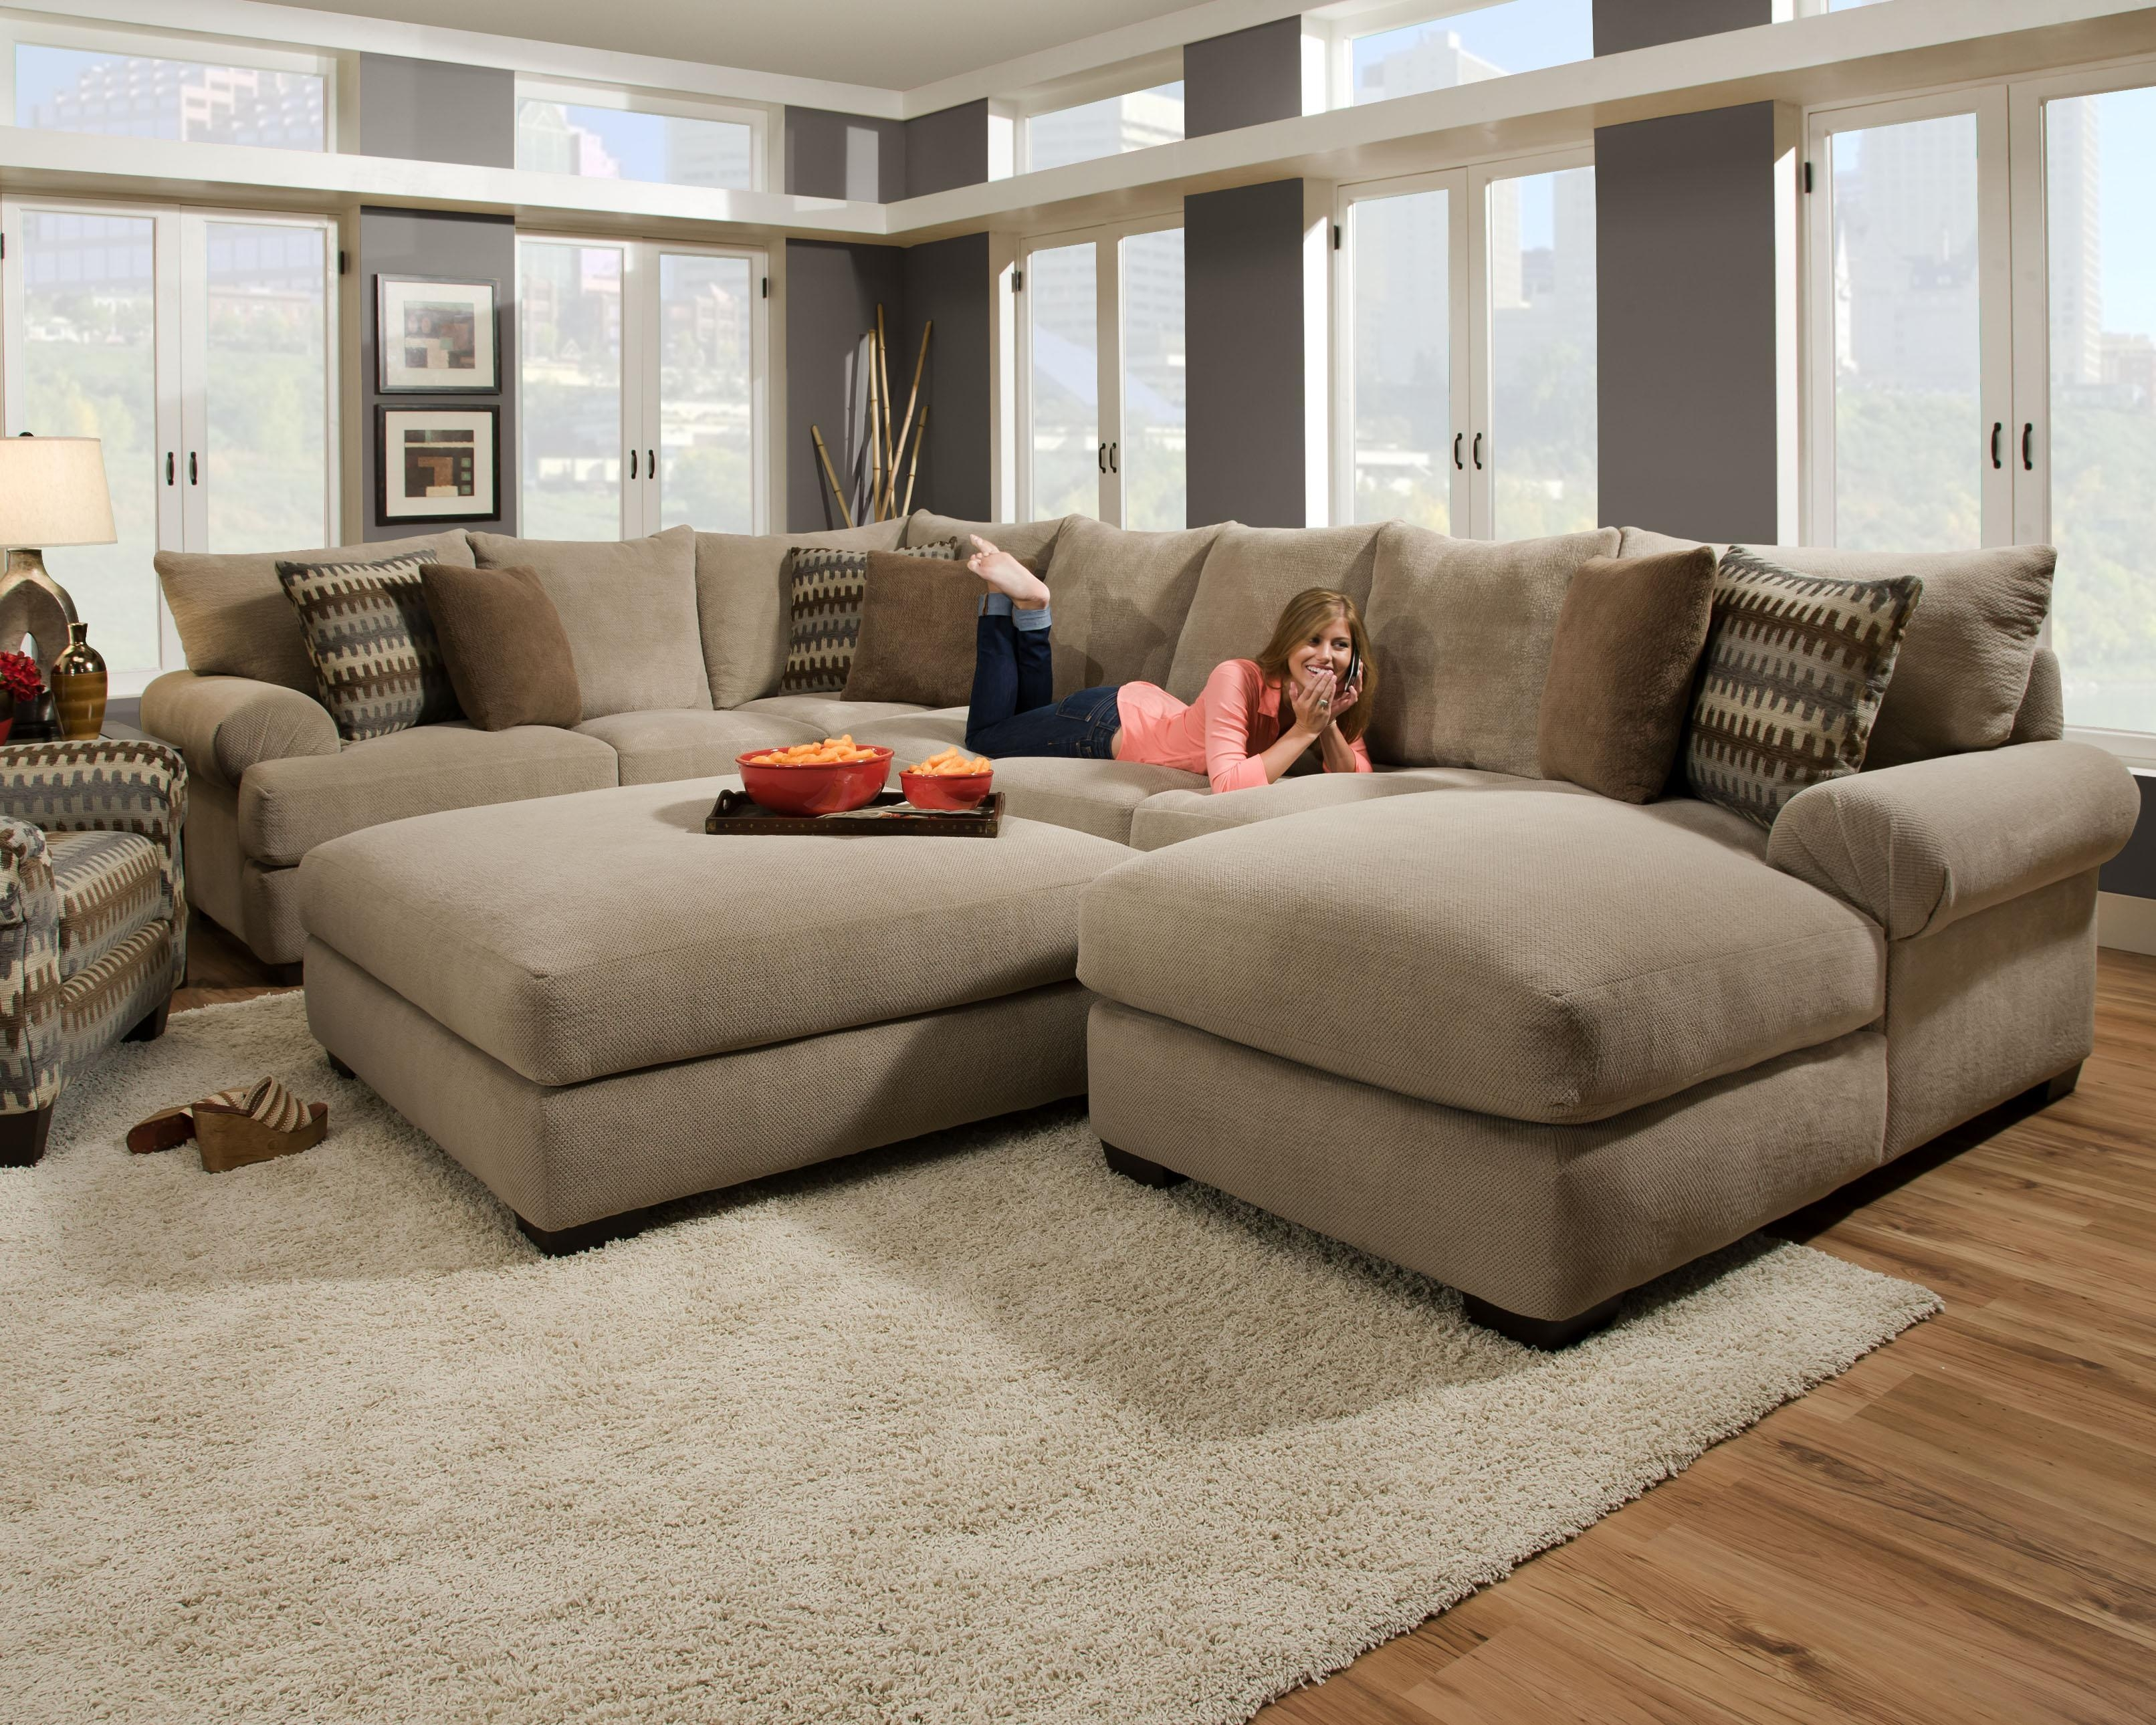 Cheap Comfortable Sectional Sofas | Tehranmix Decoration Within Large Comfortable Sectional Sofas (Image 2 of 20)